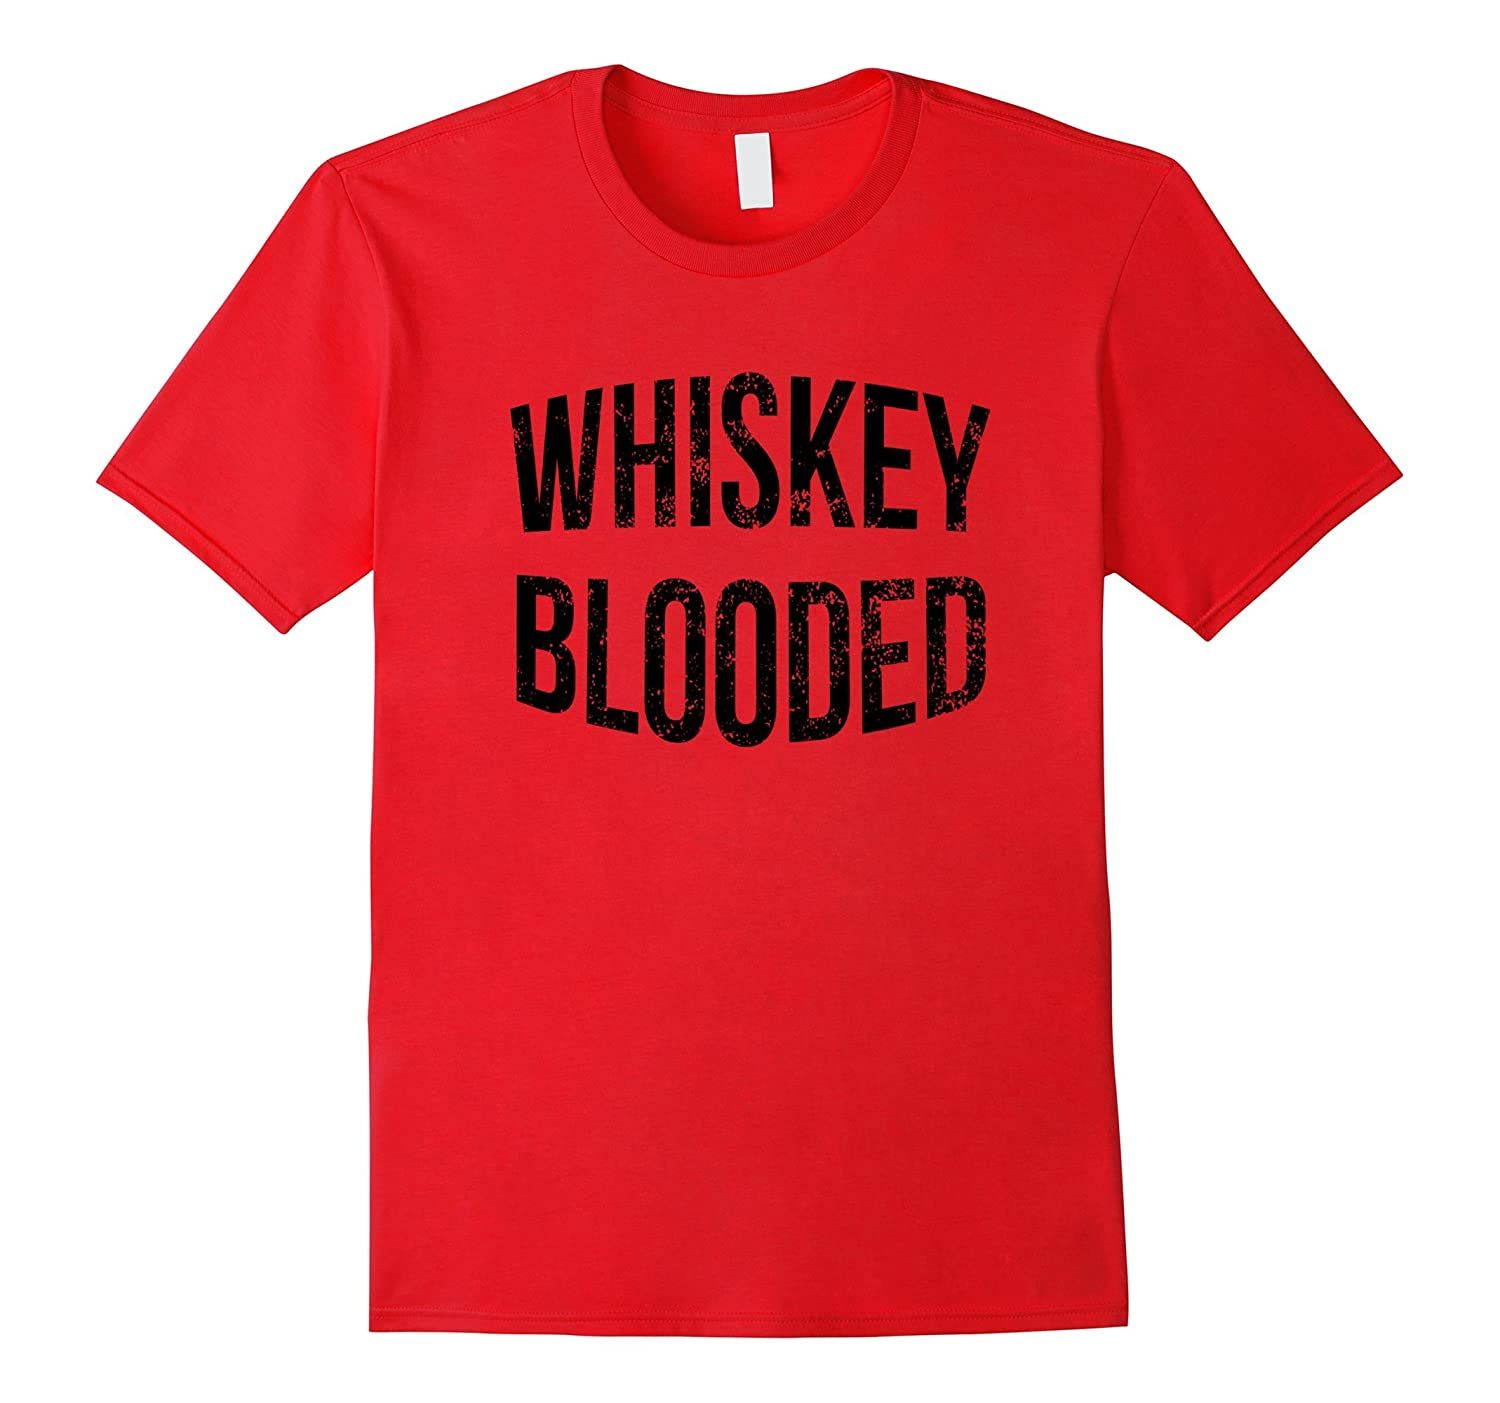 Whiskey Blooded Cool Alcohol Whiskey Shirt  The Gentle Sirs-TD